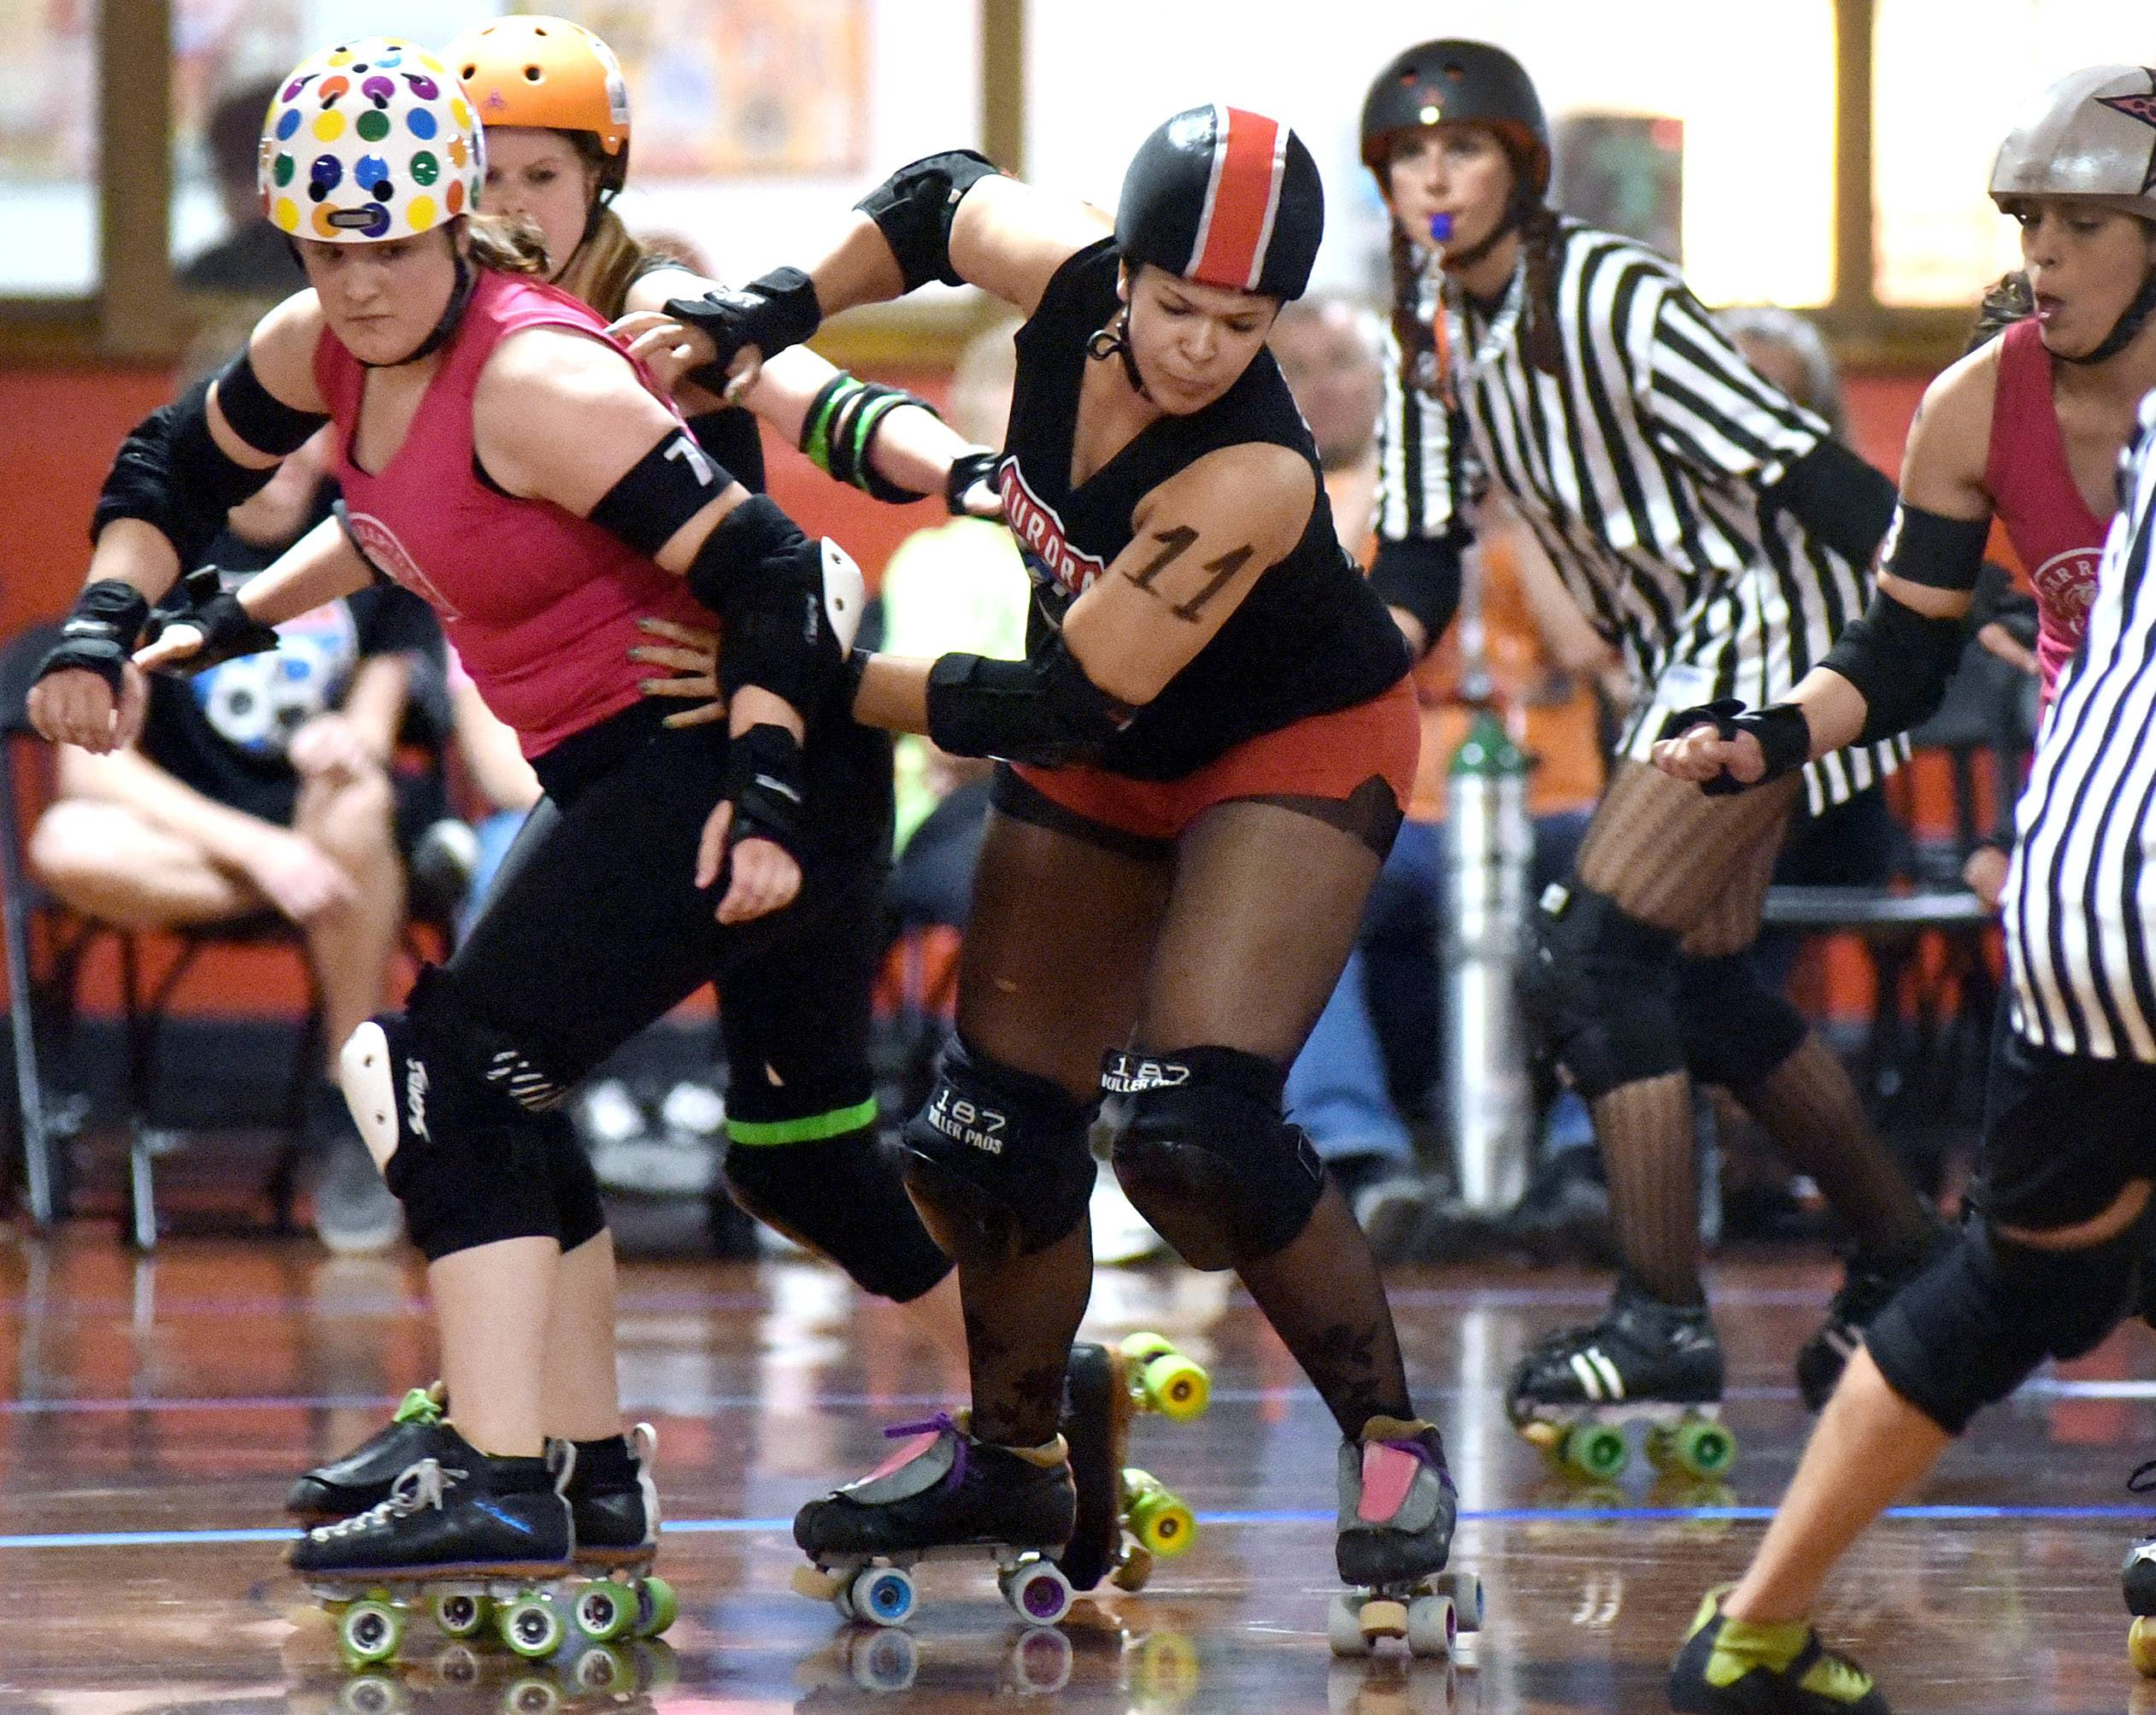 Charity Hayes of Algonquin plays the pivot position and steps in an attempt to stop the jammer from the Cedar Rapids Roller Girls from breaking through and scoring a point over the Aurora 88s.